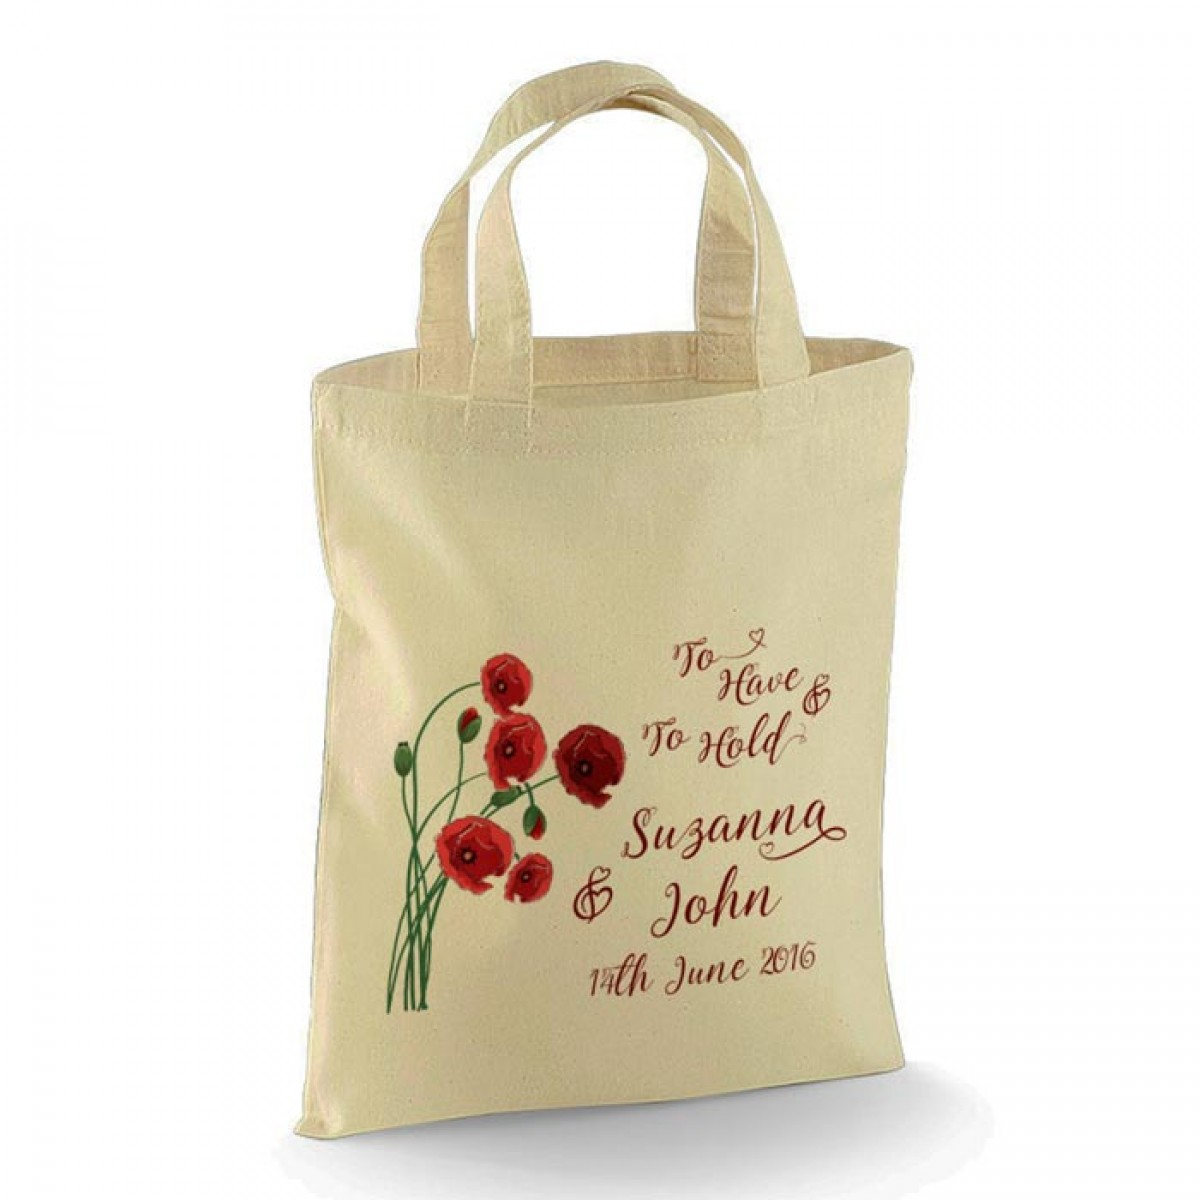 Poppy Design Personalised Wedding Favour Cotton Tote Bag Wedding ...